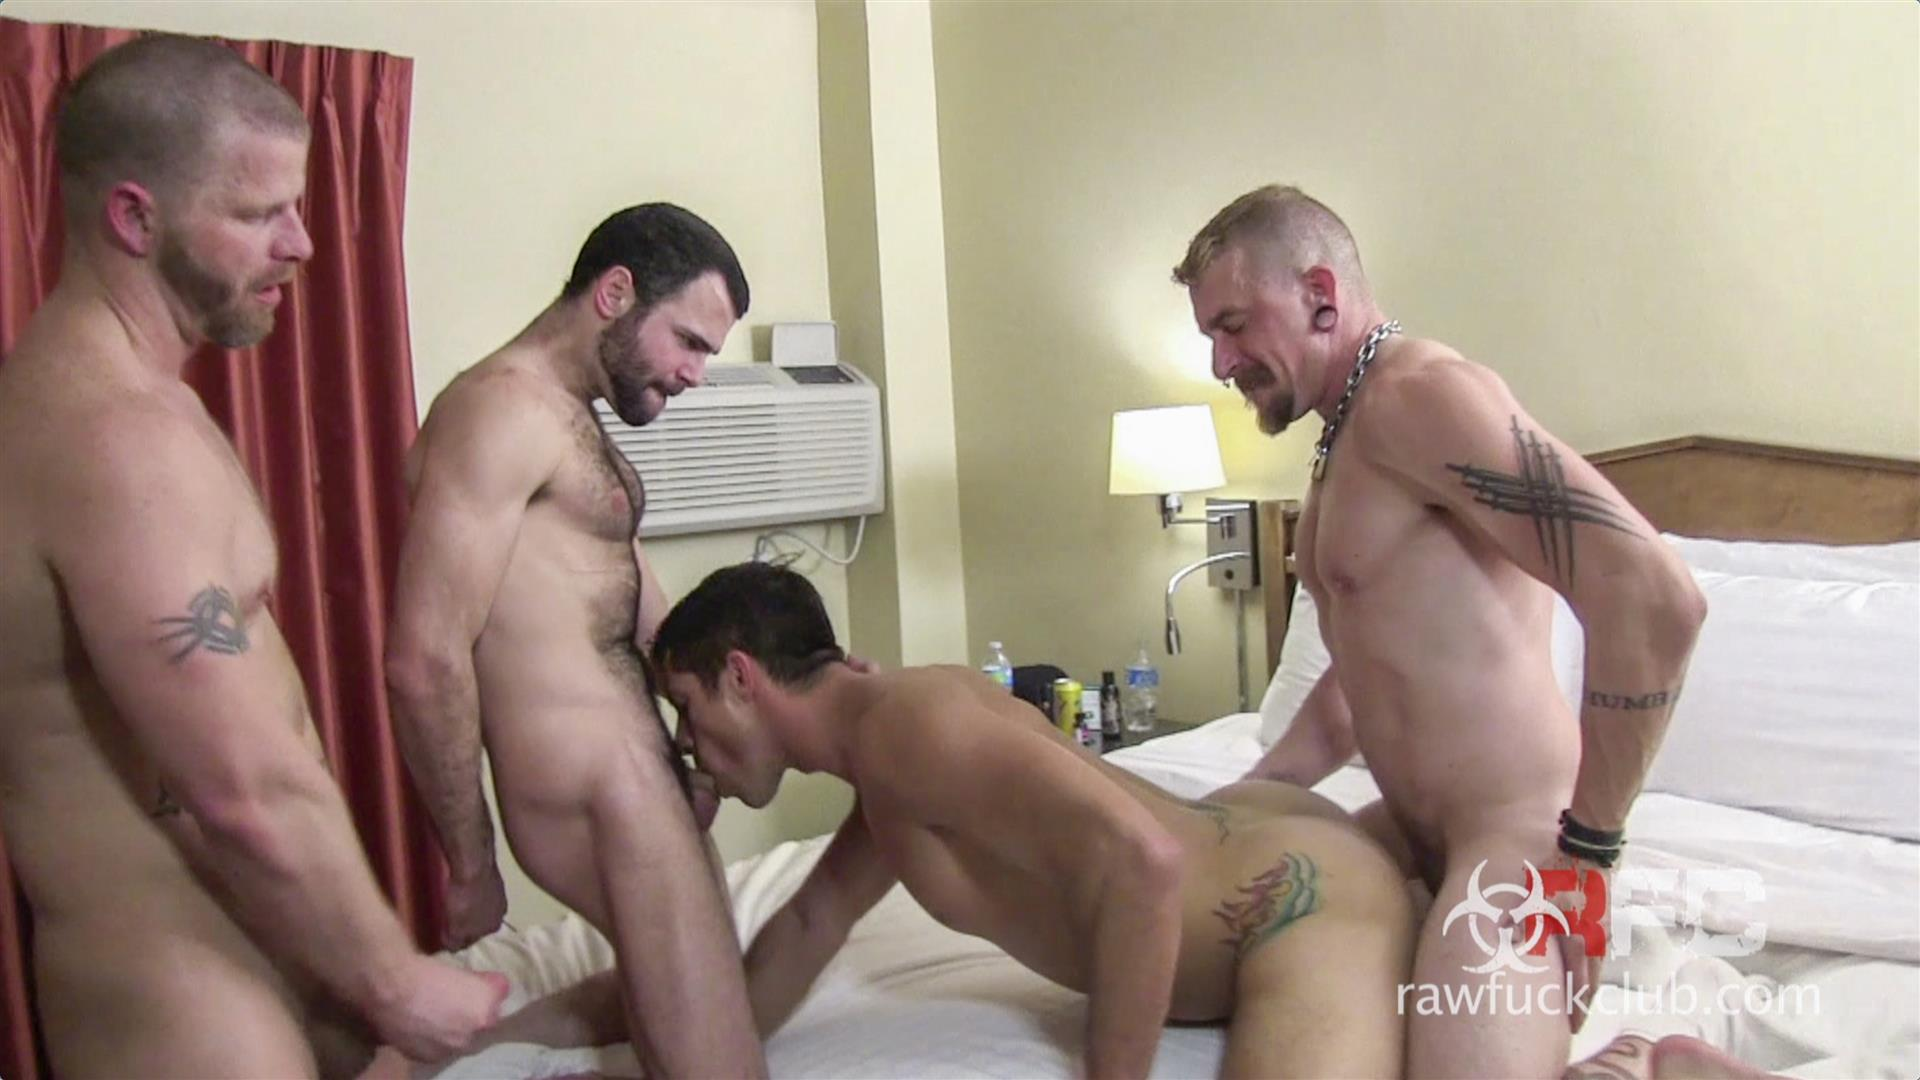 Raw-Fuck-Club-Dylan-Saunders-and-Dusty-Williams-and-Jeff-Kendall-and-Jeremy-Stevens-BBBH-Amateur-Gay-Porn-07 Big Cock Amateur Hotel Bareback Sex Party